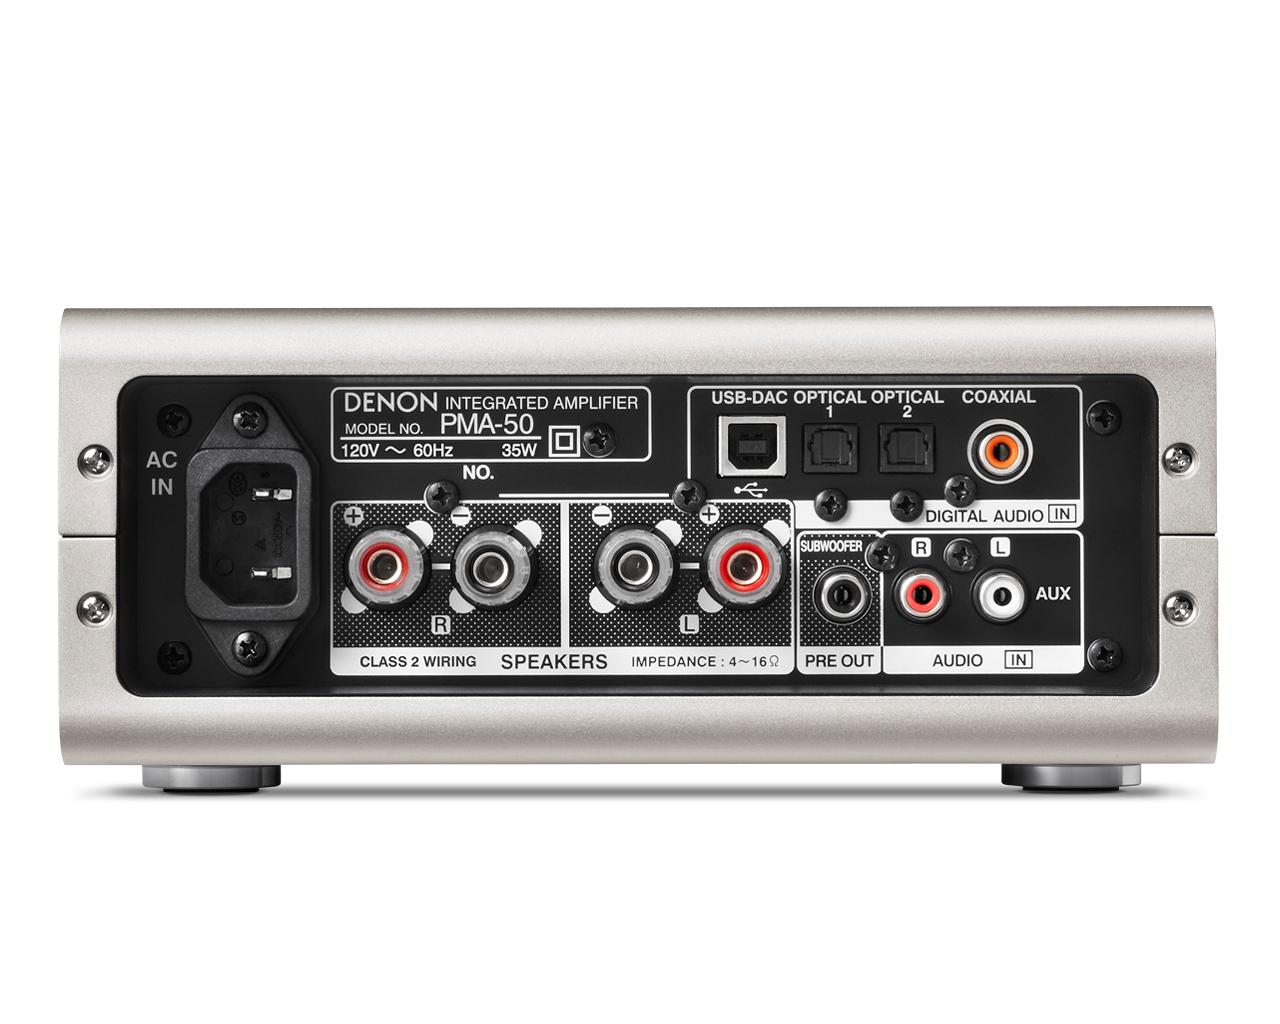 Denon Pma 50 Compact Digital Amplifier Home Audio Theater Circuit Channel Power Electronic Car Ignition View Larger